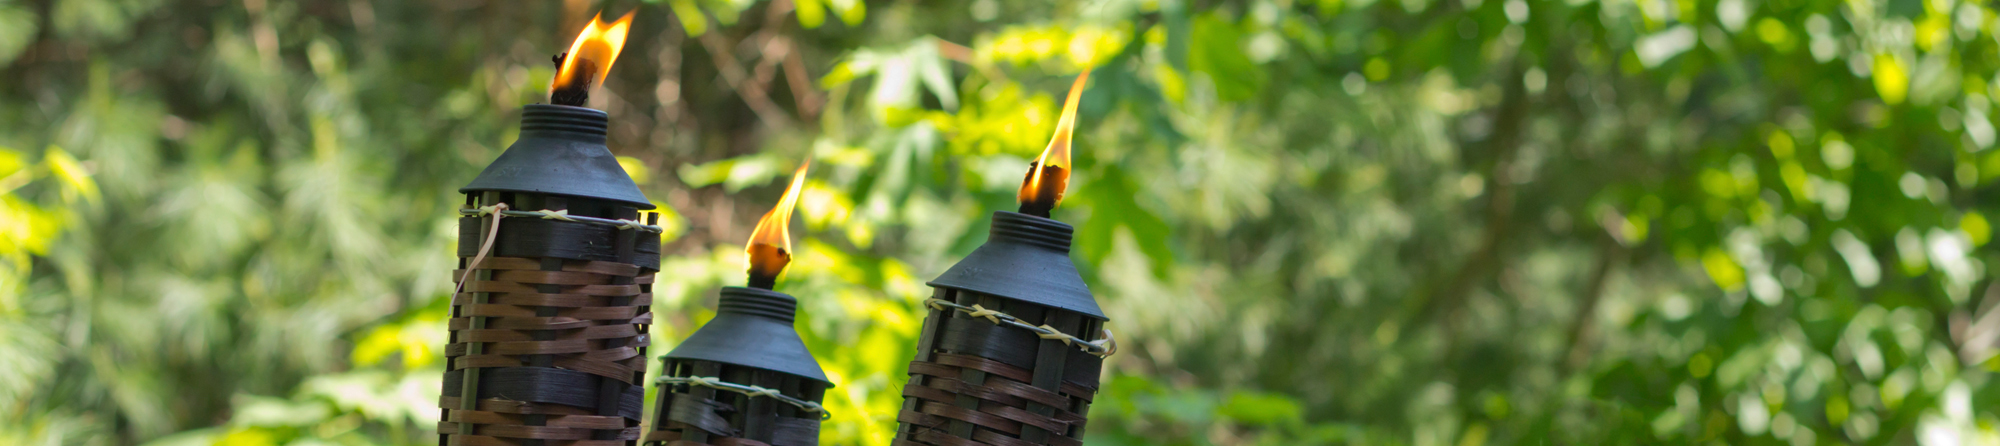 3 burning tiki torches to ward off mosquitoes